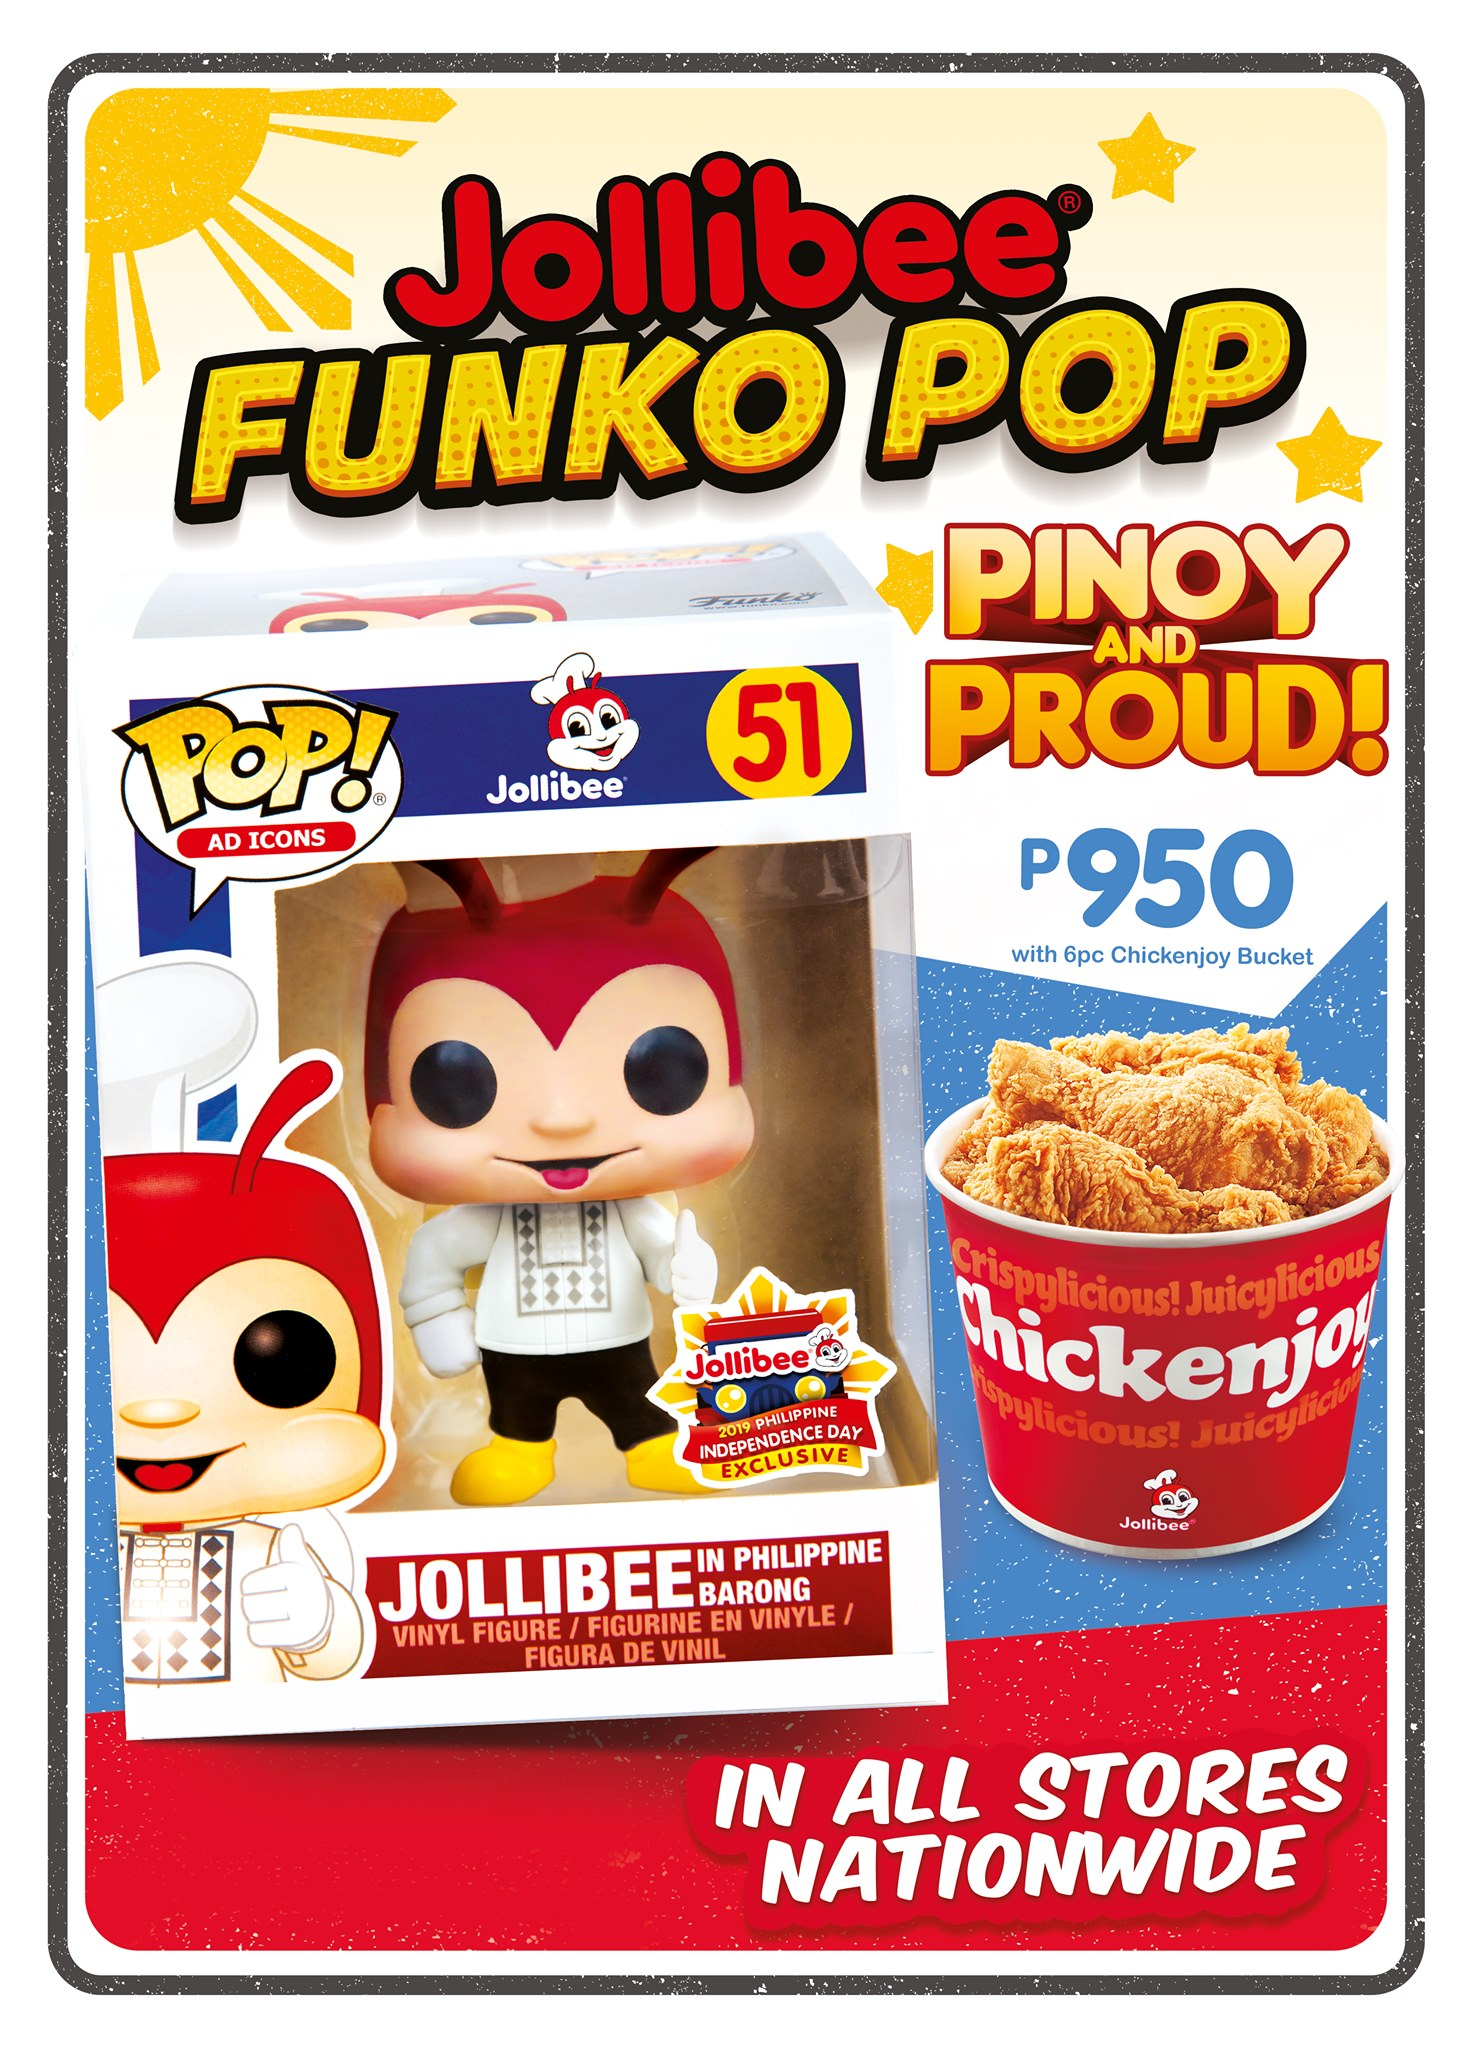 Jollibee in Philippine Barong Funko Pop